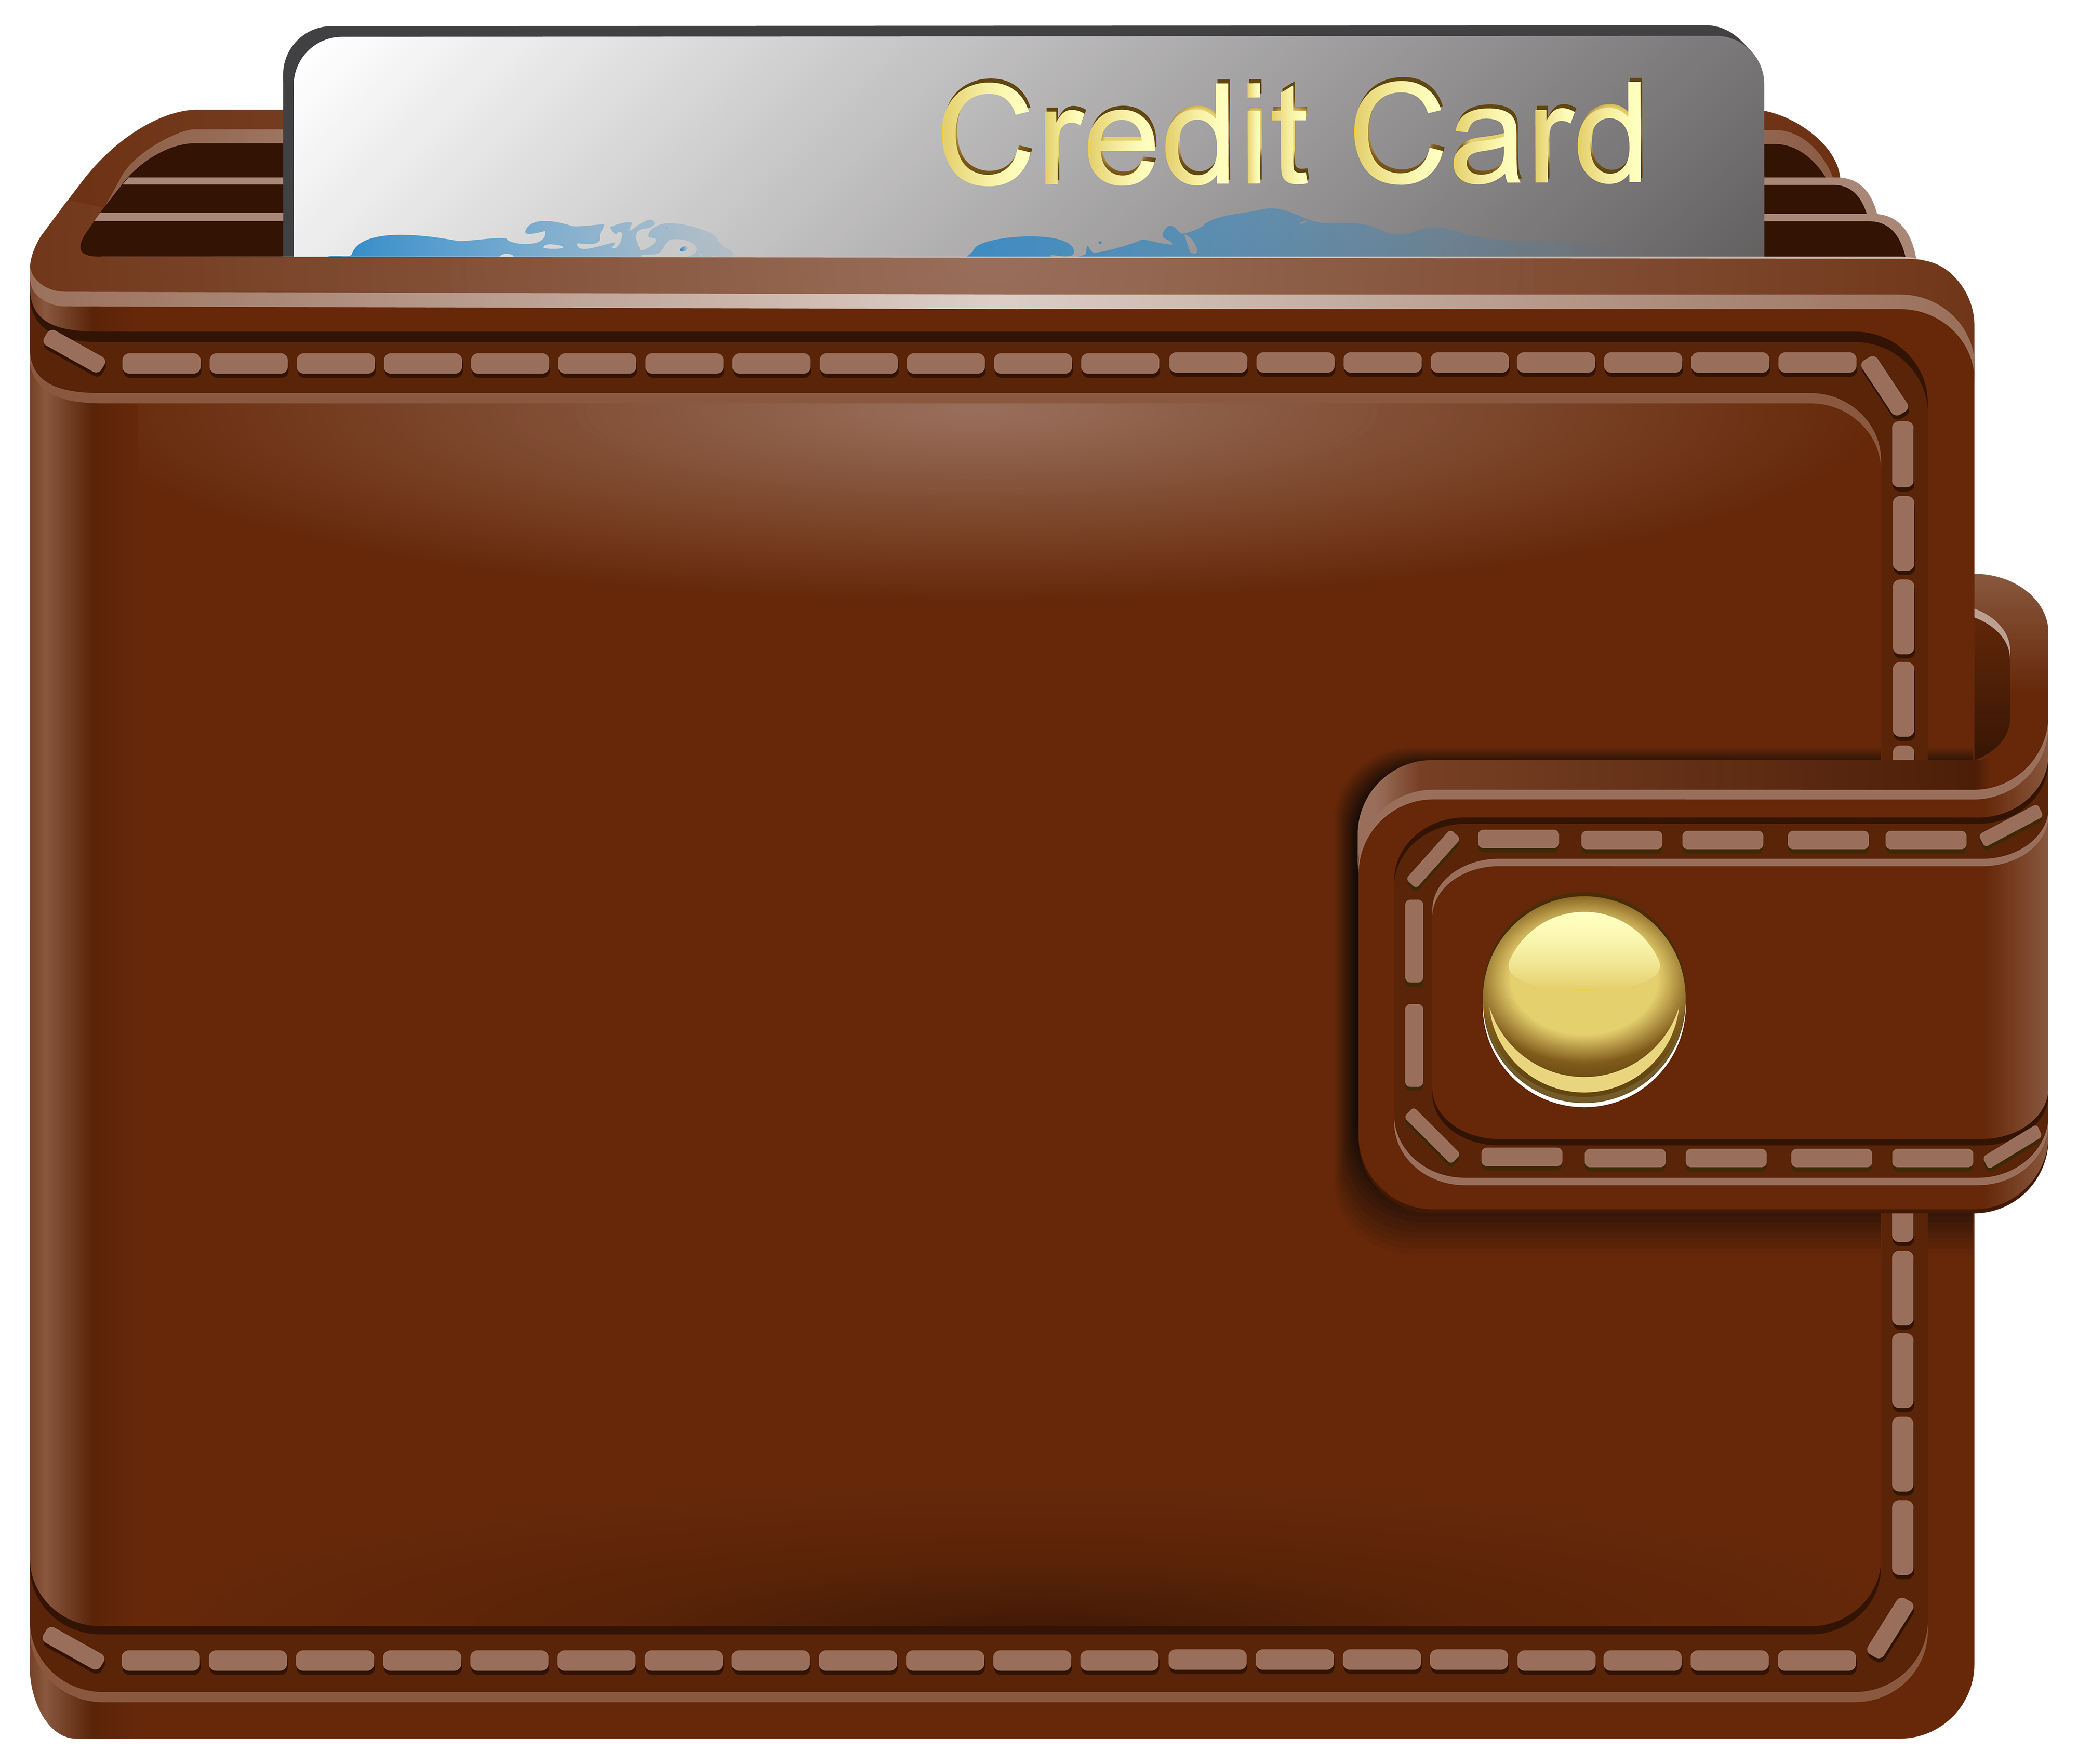 Google wallet clipart image library Wallet with Credit Card PNG Clipart - Best WEB Clipart image library